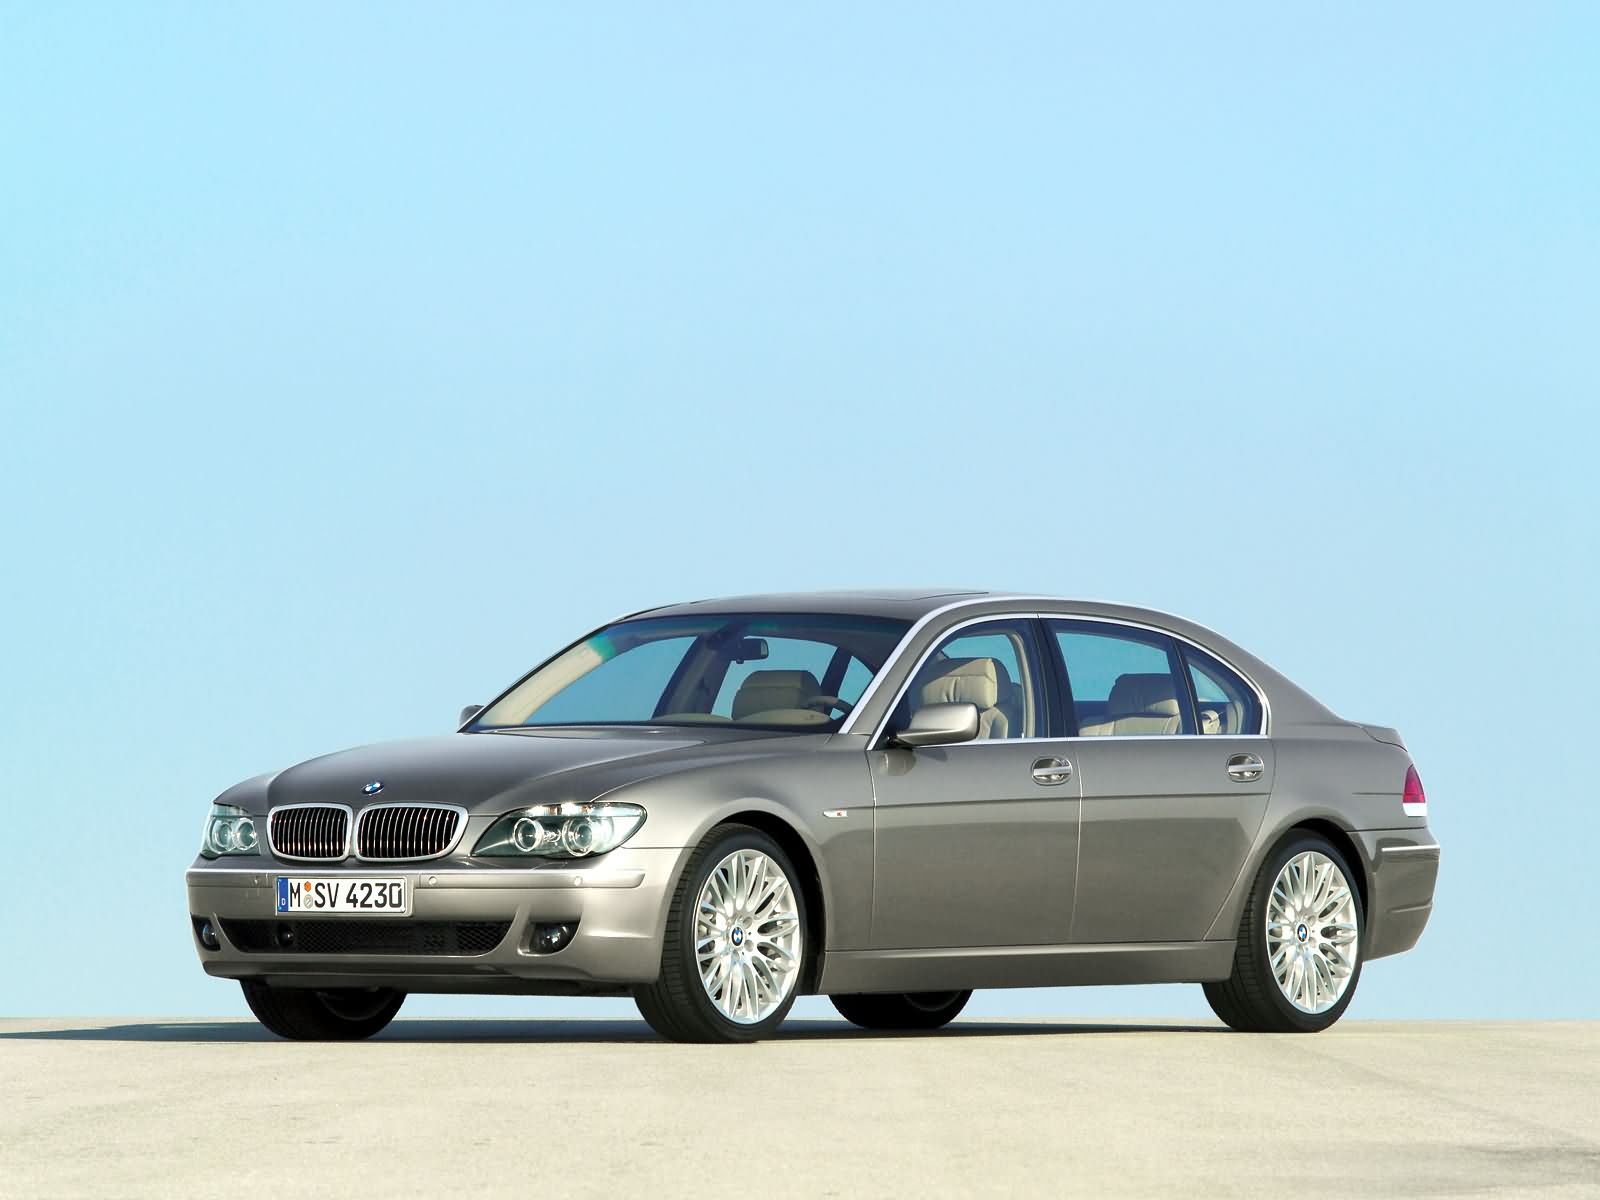 bmw 7 series e65 e66 picture 19738 bmw photo gallery. Black Bedroom Furniture Sets. Home Design Ideas